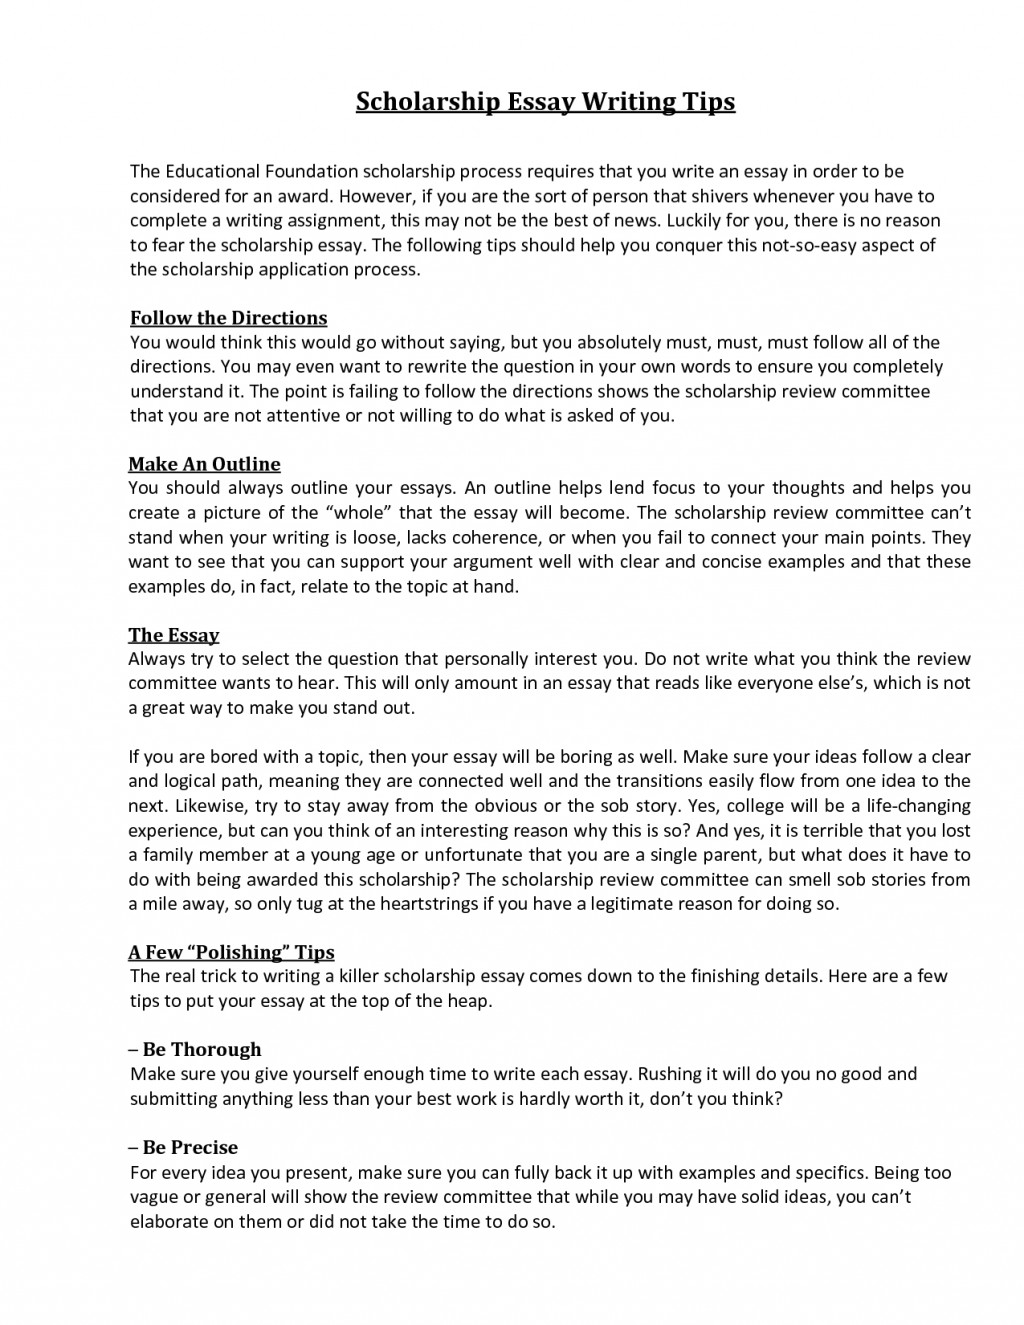 001 What To Write For Scholarship Essay Example Awesome A How That Stands Out About Your Career Goals Financial Need Large